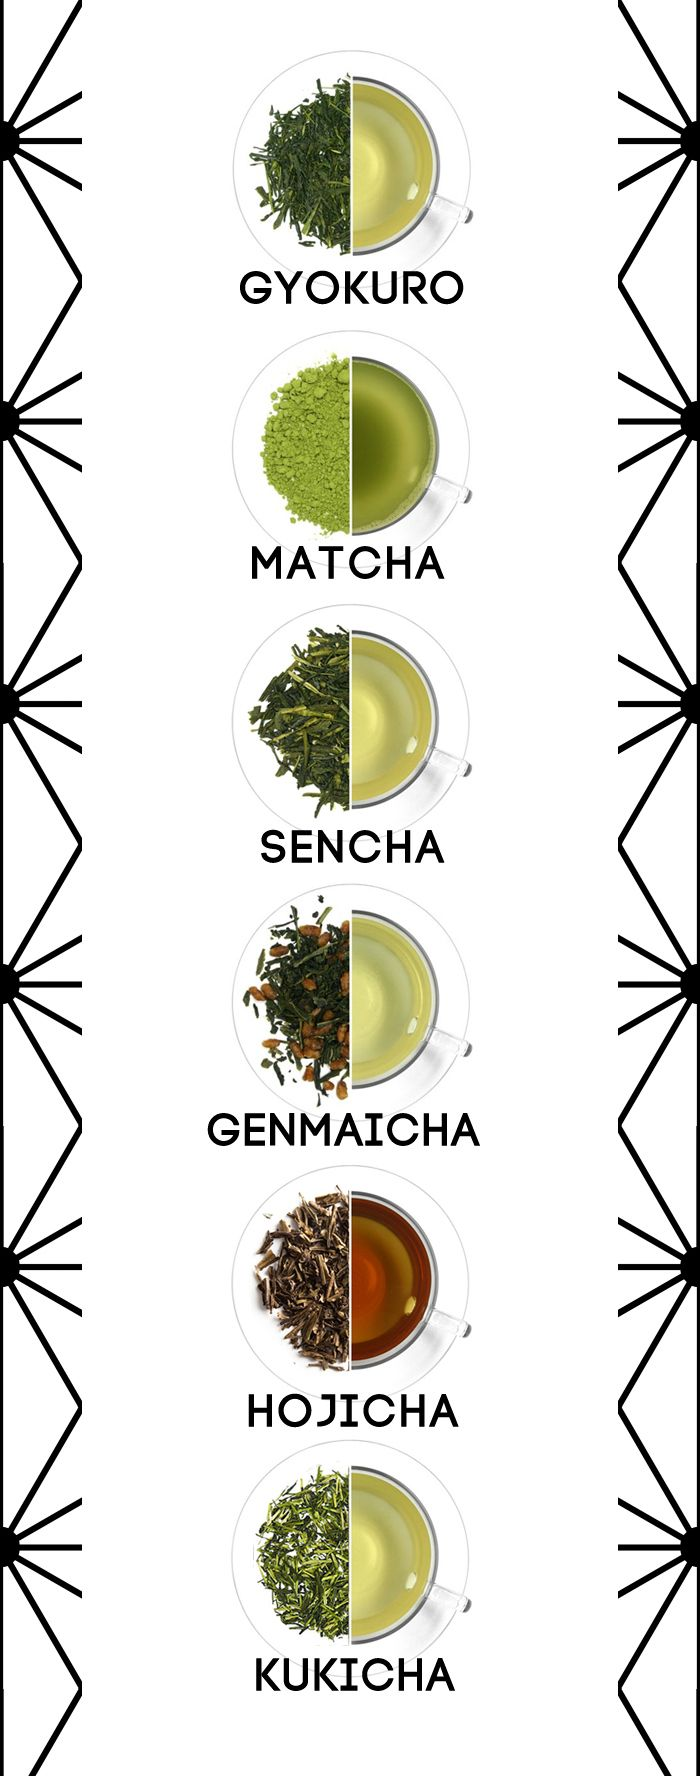 Japanese Green Tea Varieties by condospalillos #Infographic #Green_Tea #Japan